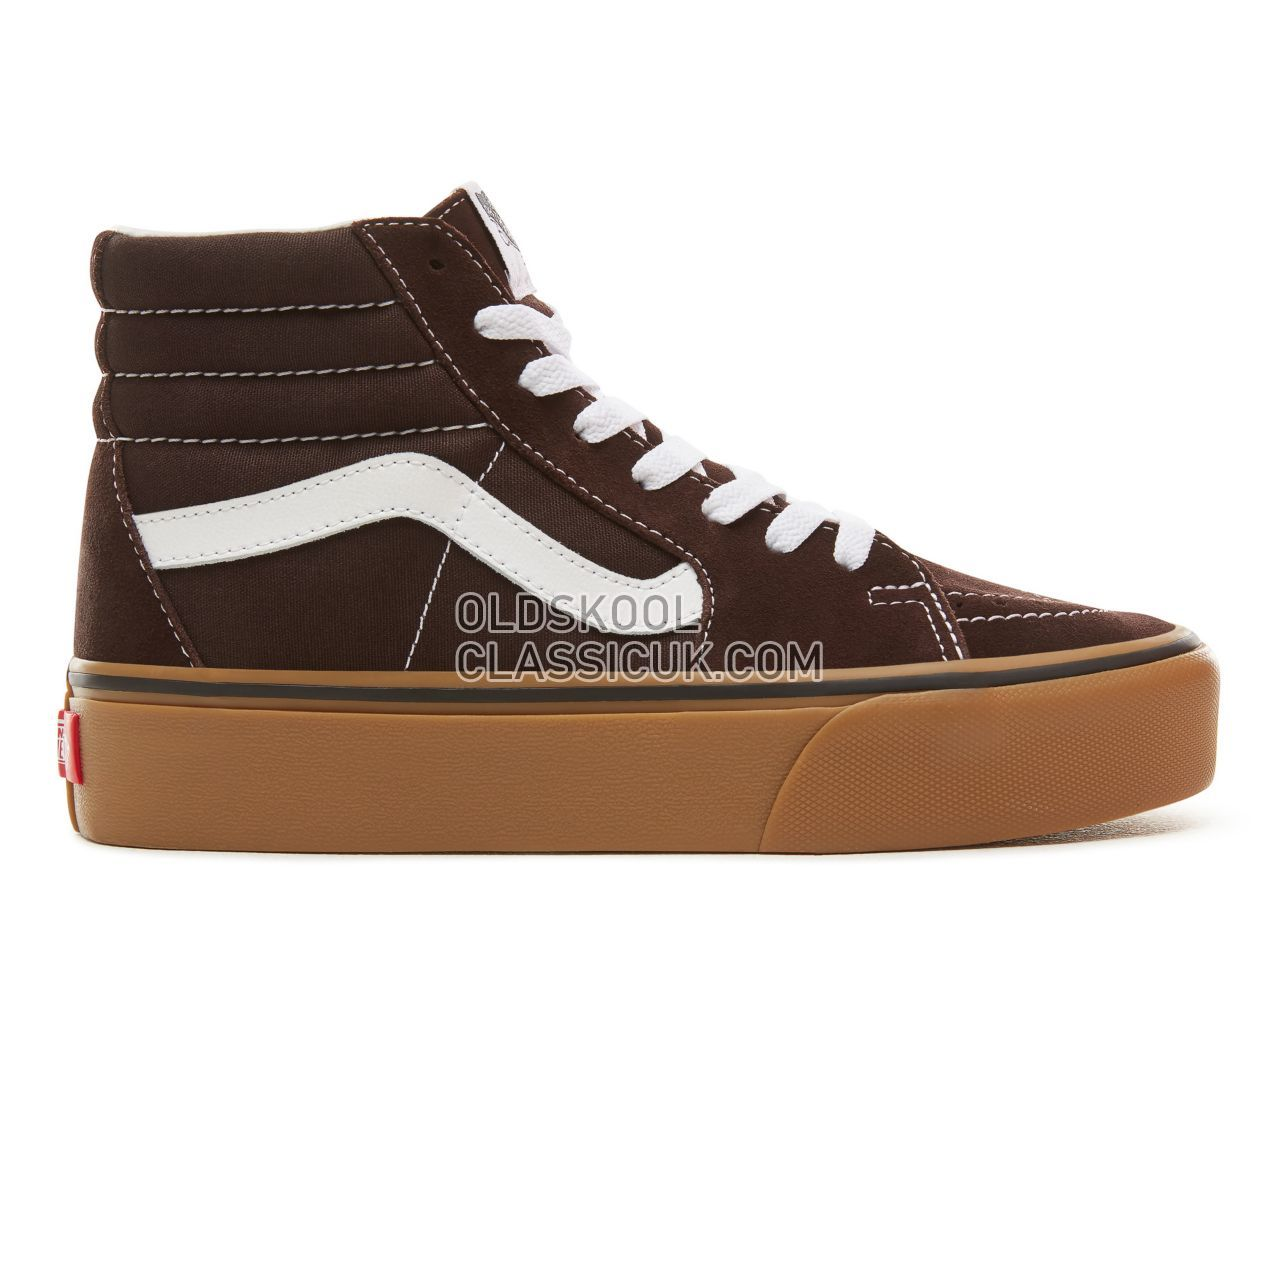 Vans Suede Gum Sk8-Hi Platform 2.0 Sneakers Womens (Gum) Chocolate Torte/True White VA3TKNUCC Shoes